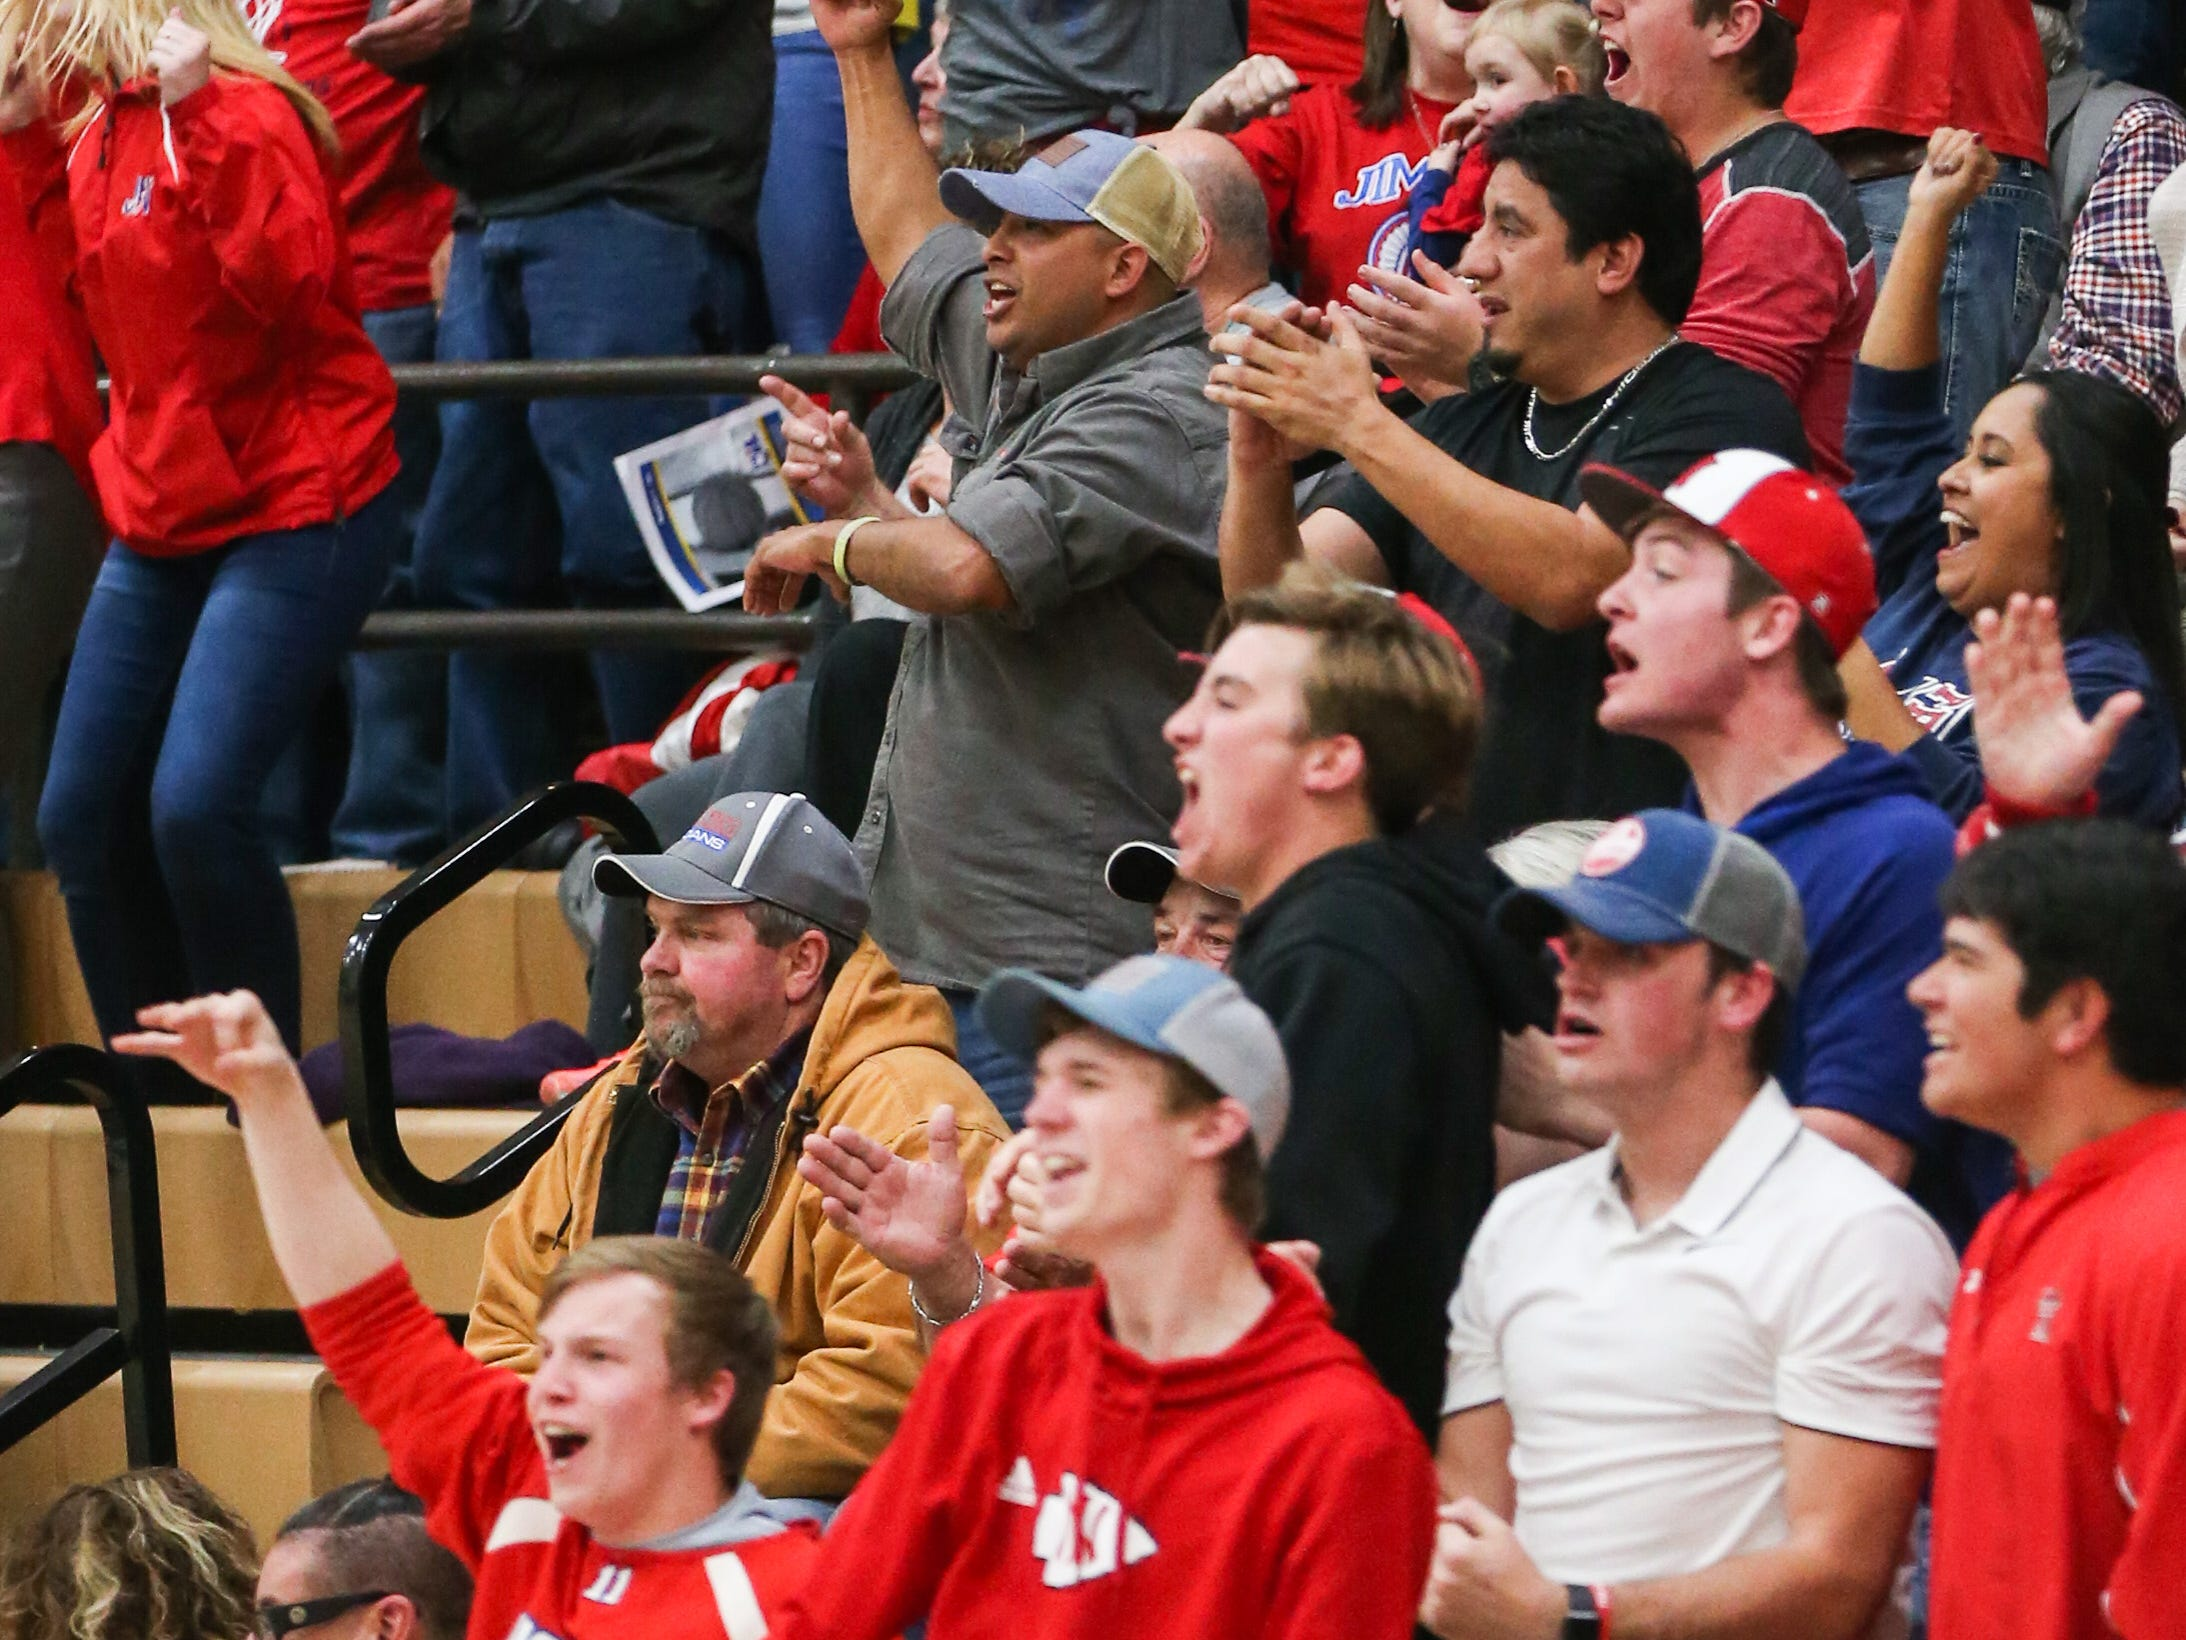 Jim Ned fans cheer on their team during the I-3A regional tournament against Idalou Friday, Feb. 22, 2019, at Wayland Baptist University in Plainview.